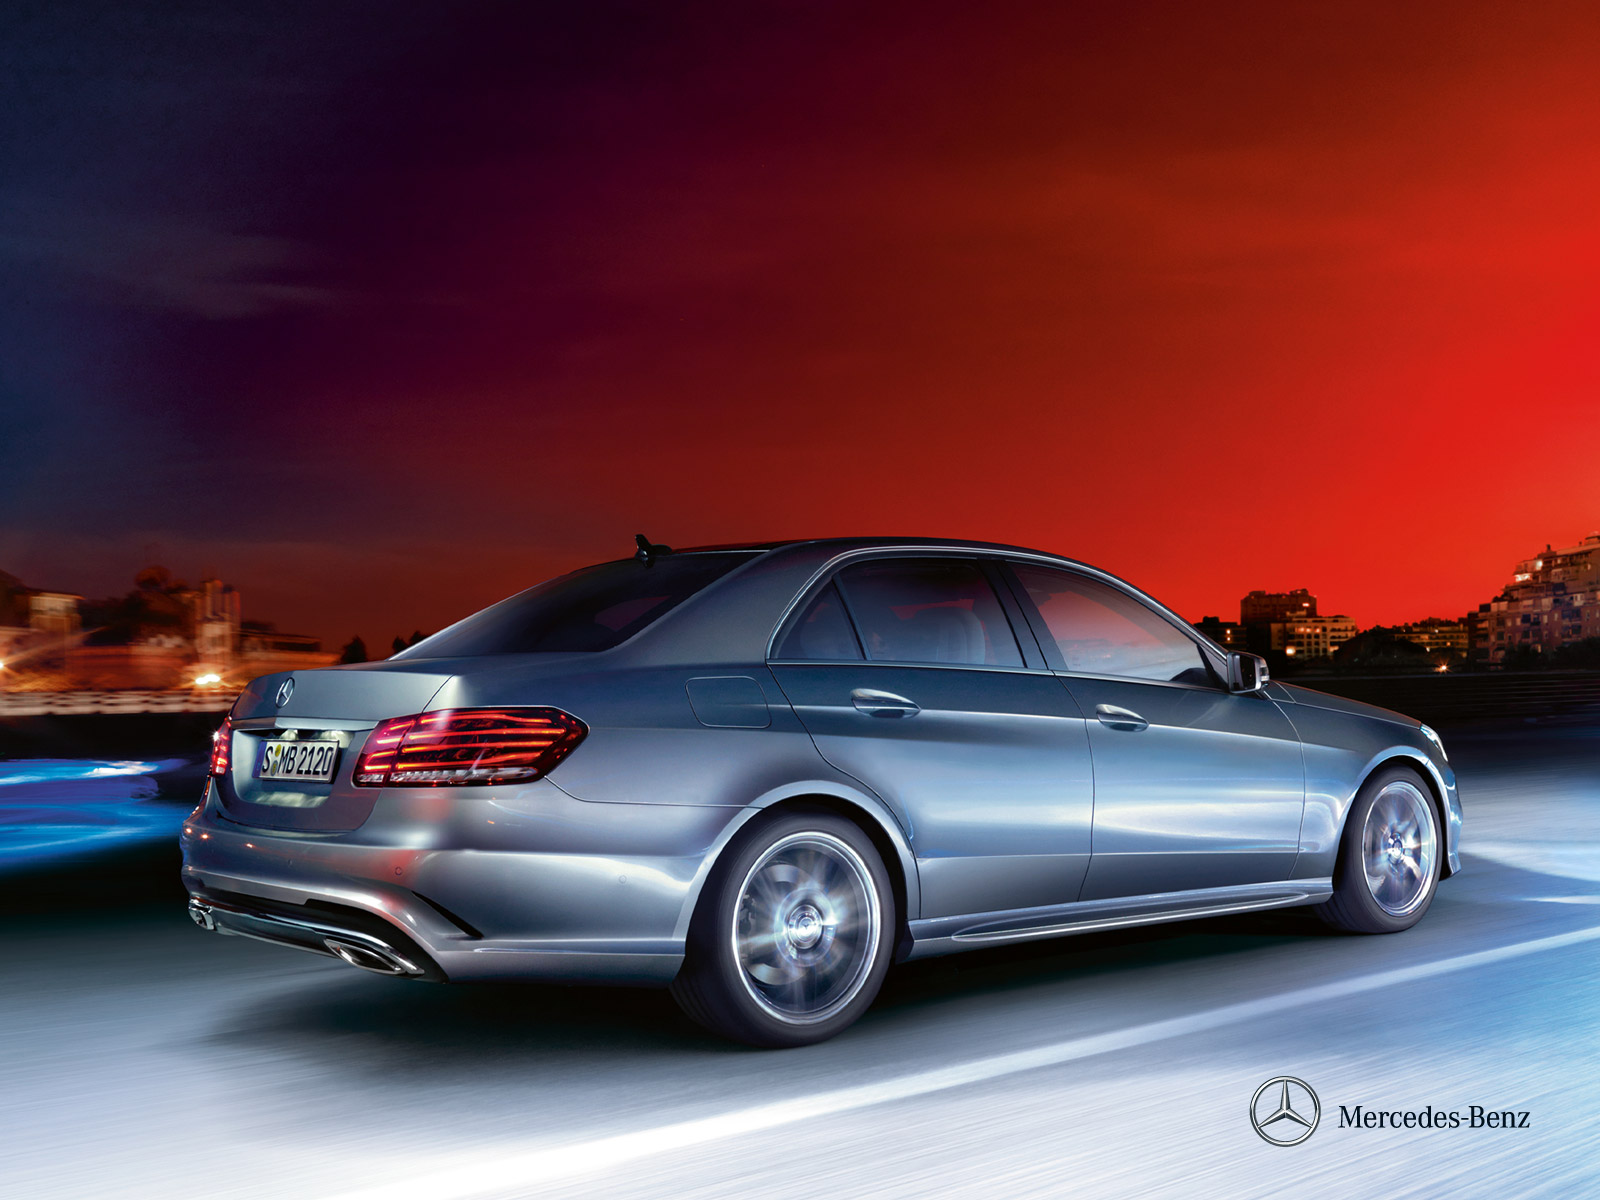 mercedes benz e class 350 cdi launched in india. Black Bedroom Furniture Sets. Home Design Ideas